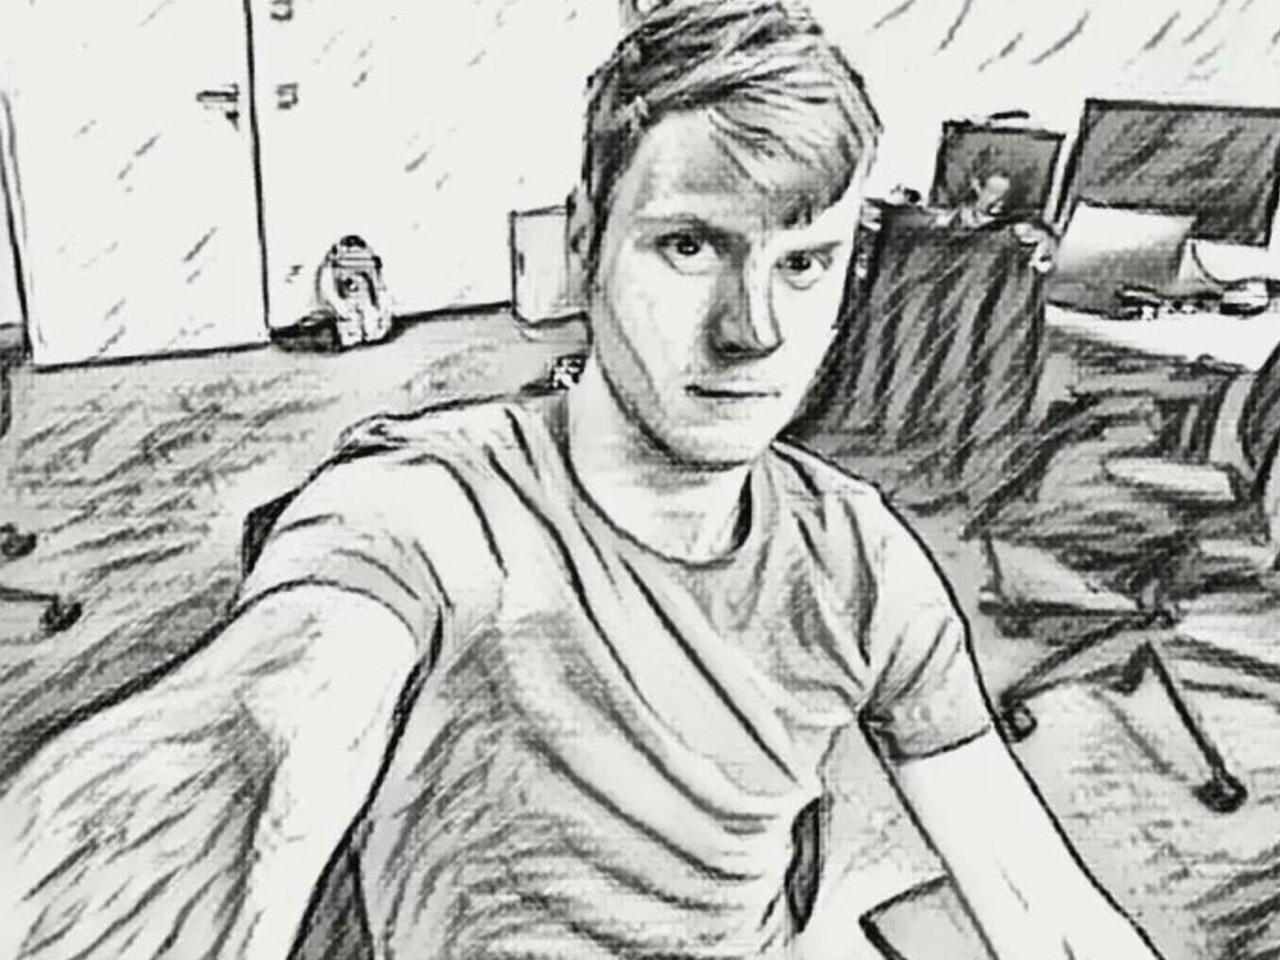 Stereo Style Transfer AI